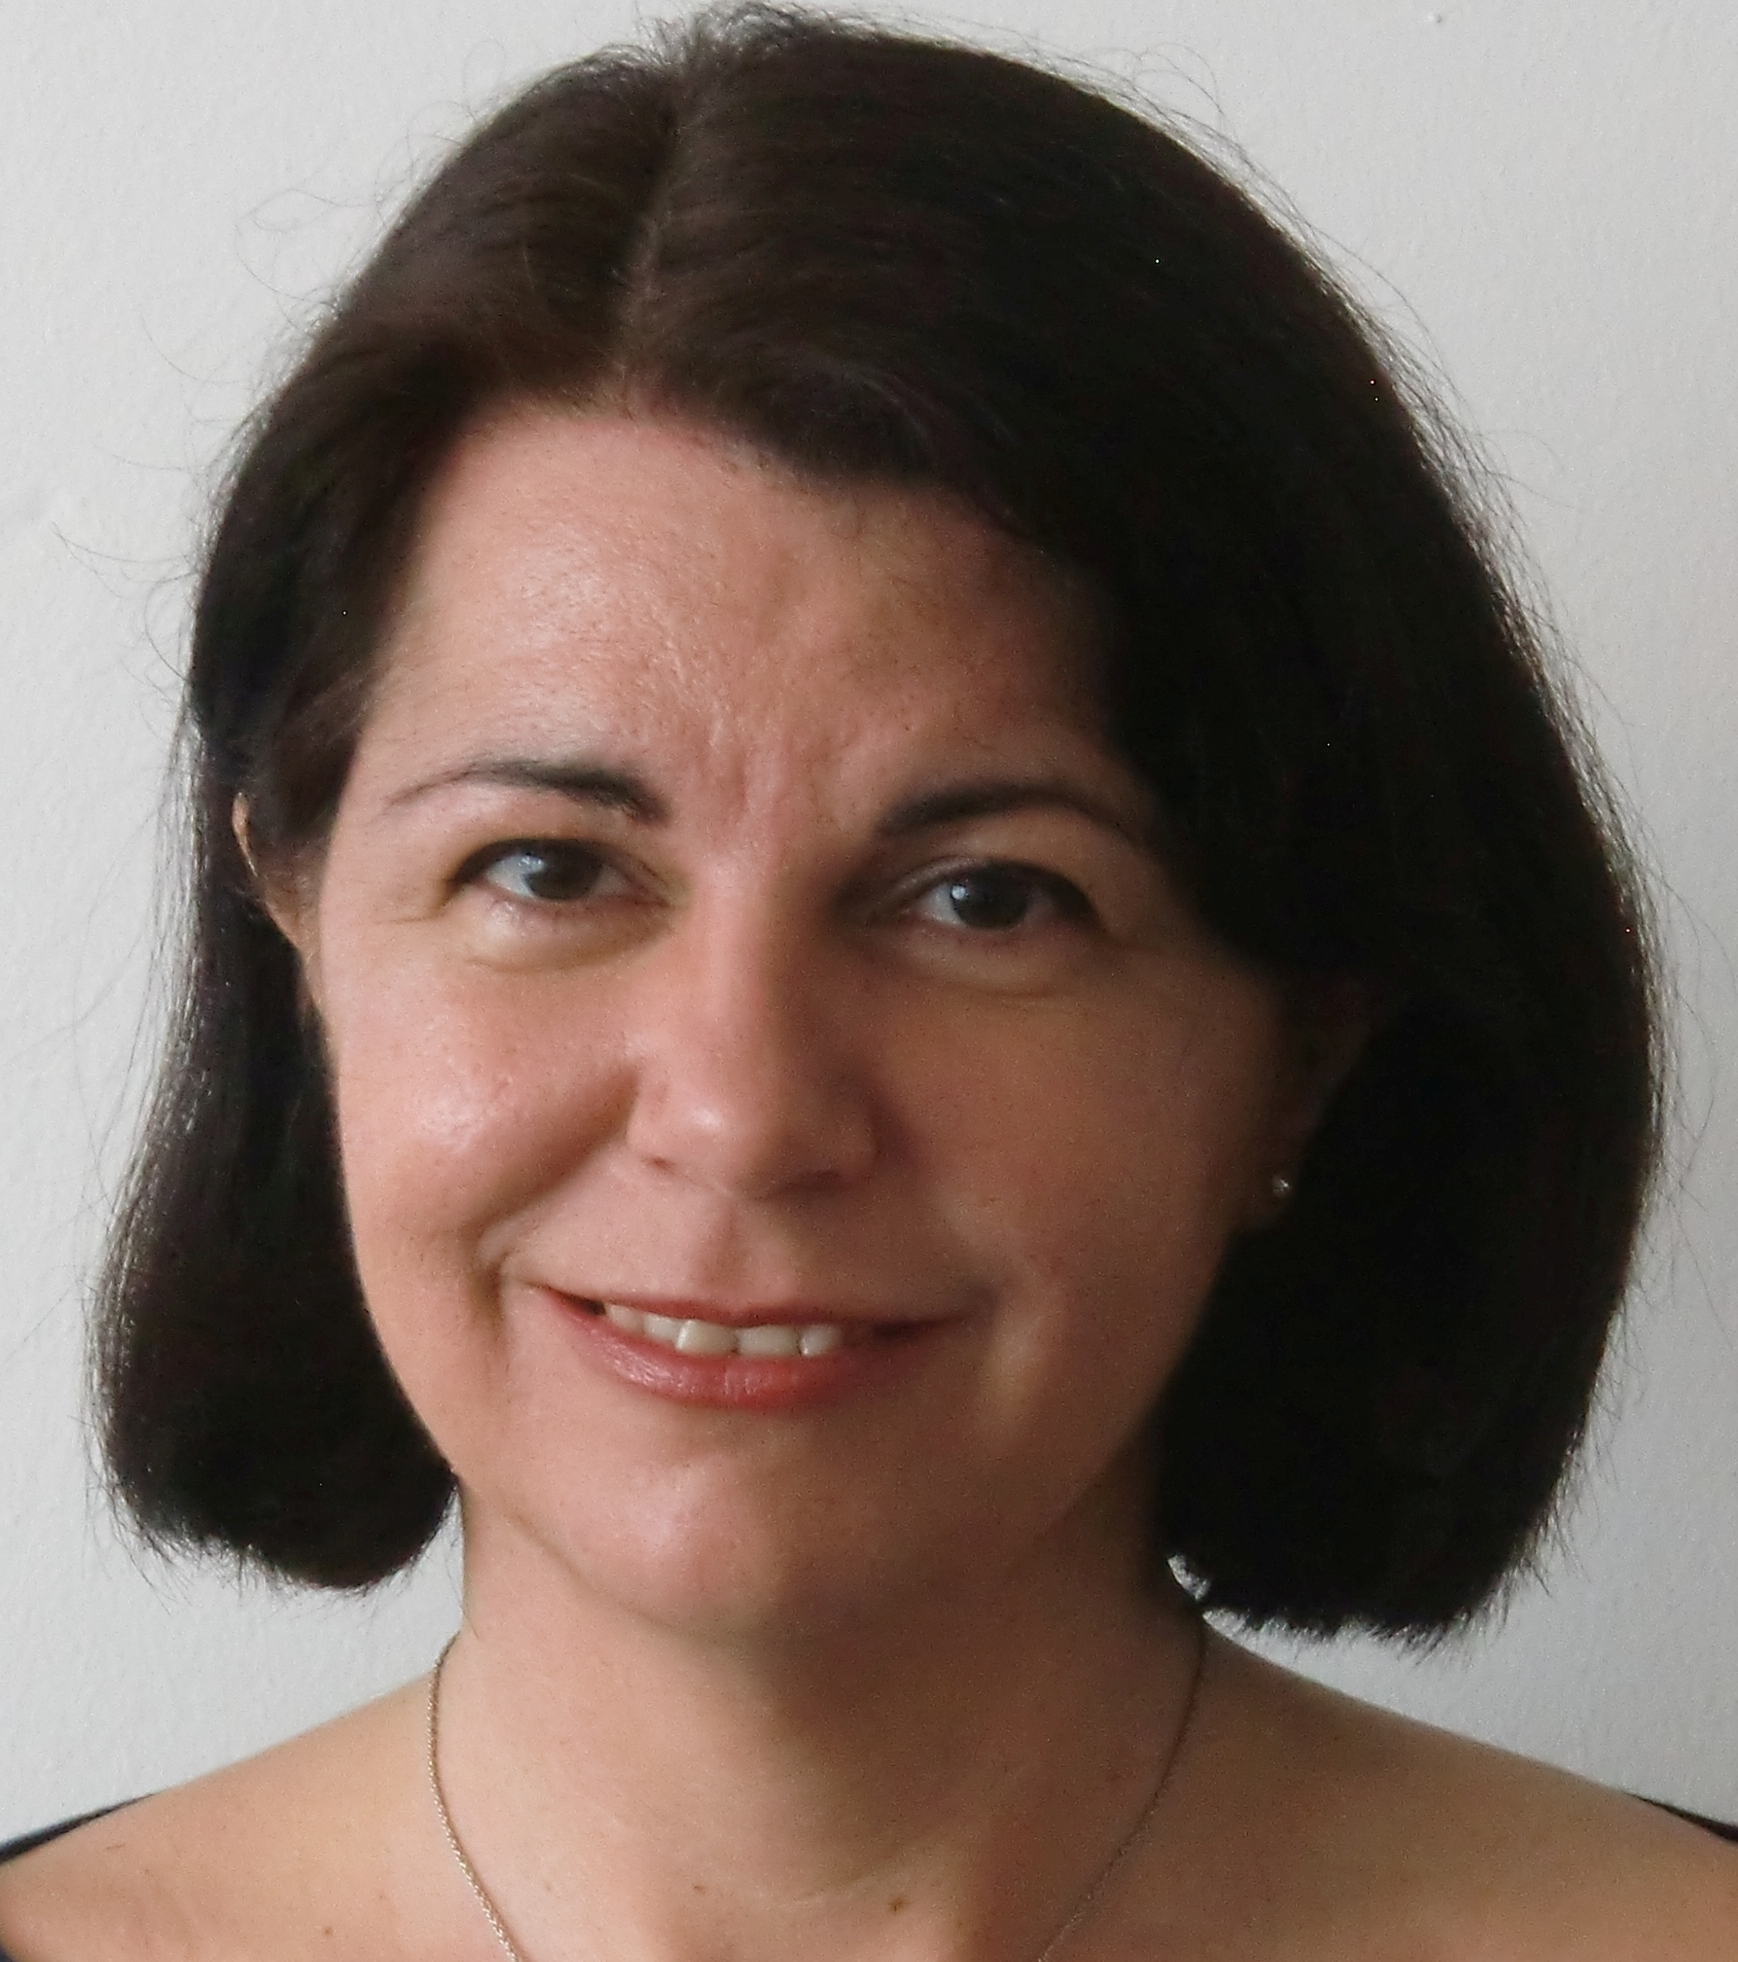 Avatar of Karin Anna Hummel